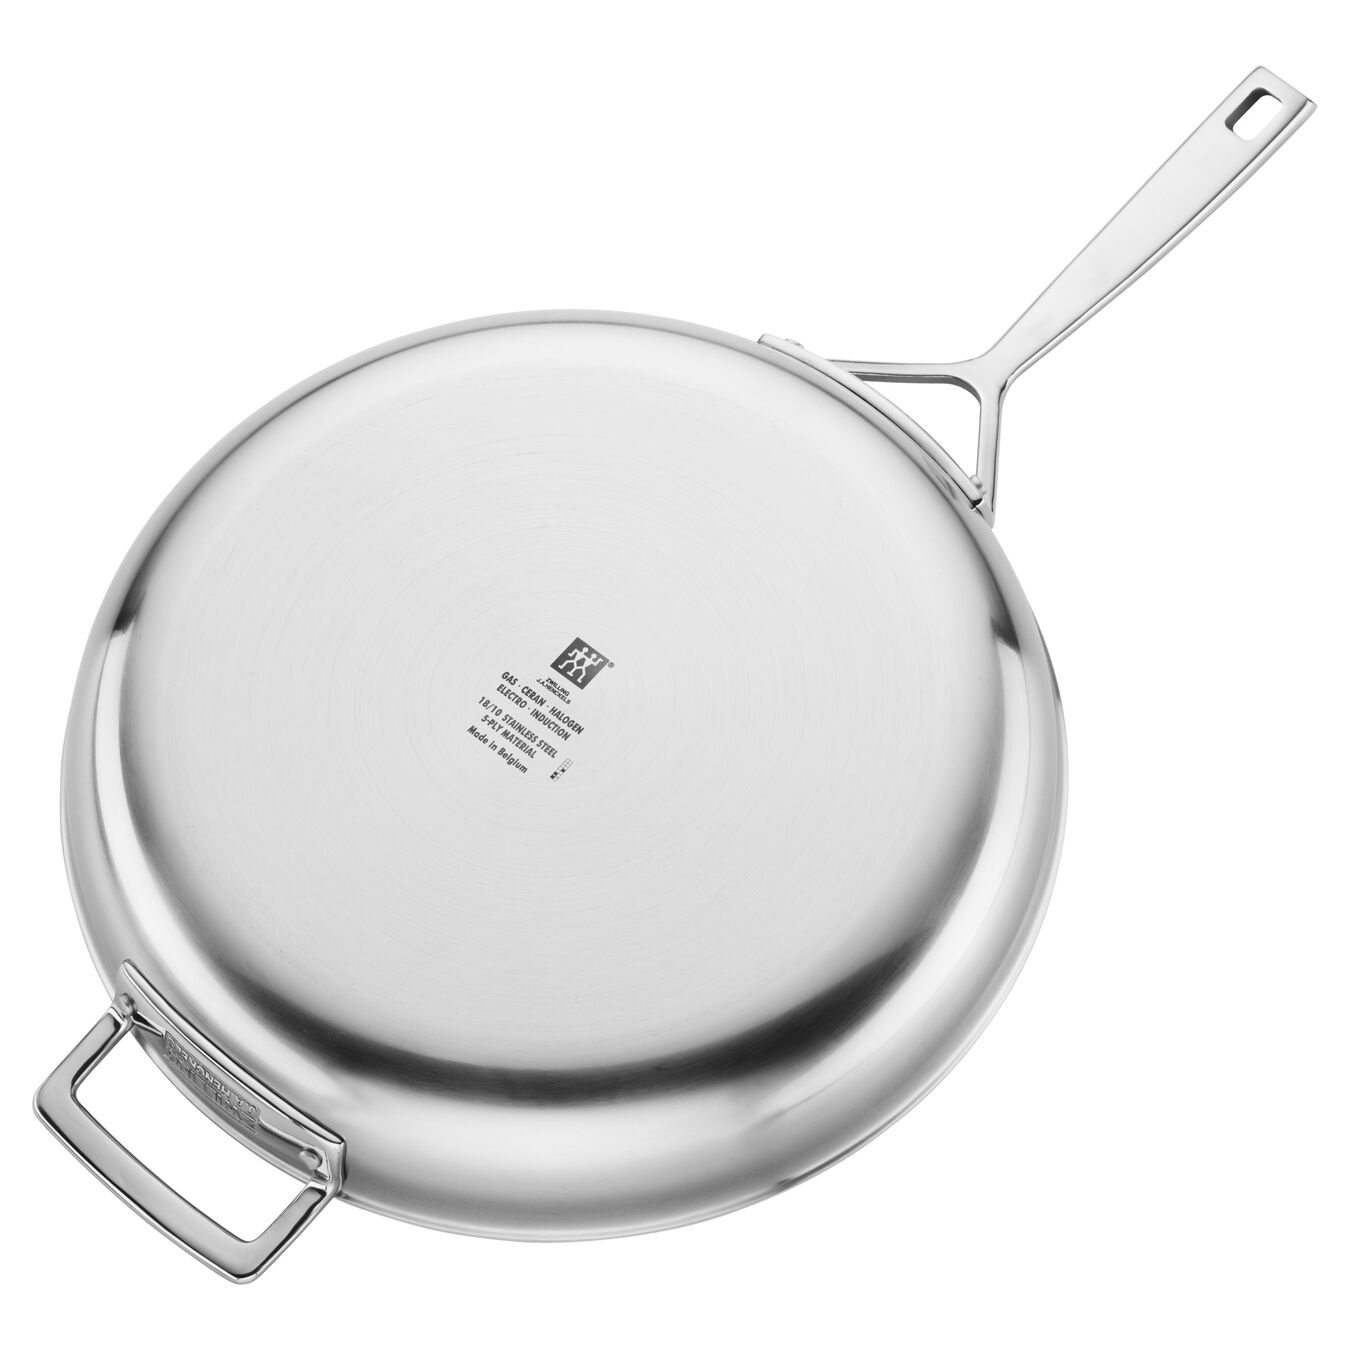 5 Ply, 18/10 Stainless Steel, 12-inch, Frying pan,,large 3